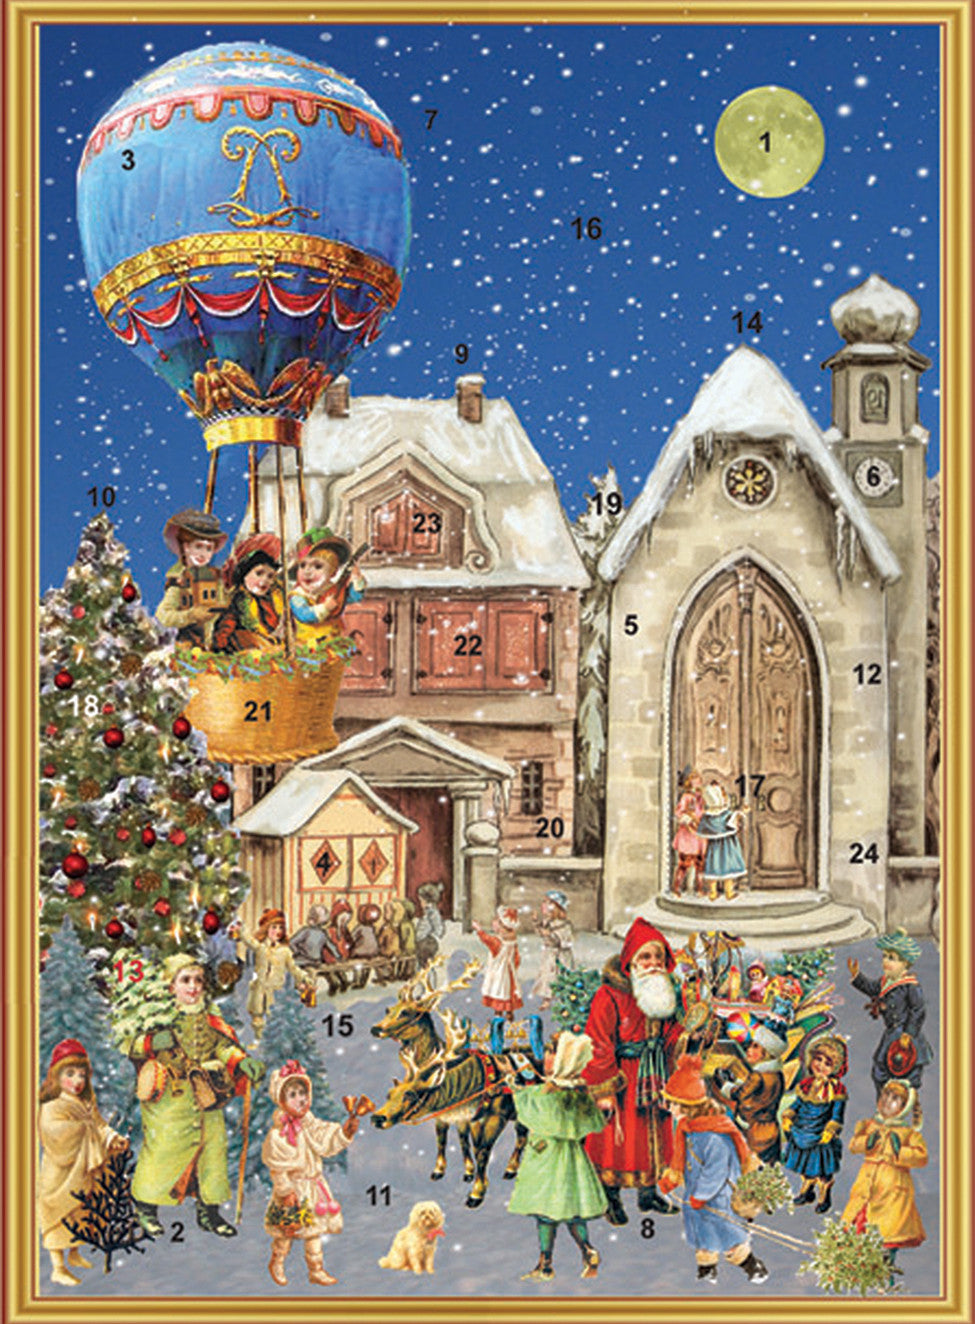 Santa Greeting Victorian Children at Town Center with Balloon - Advent Calendar GREETING CARD